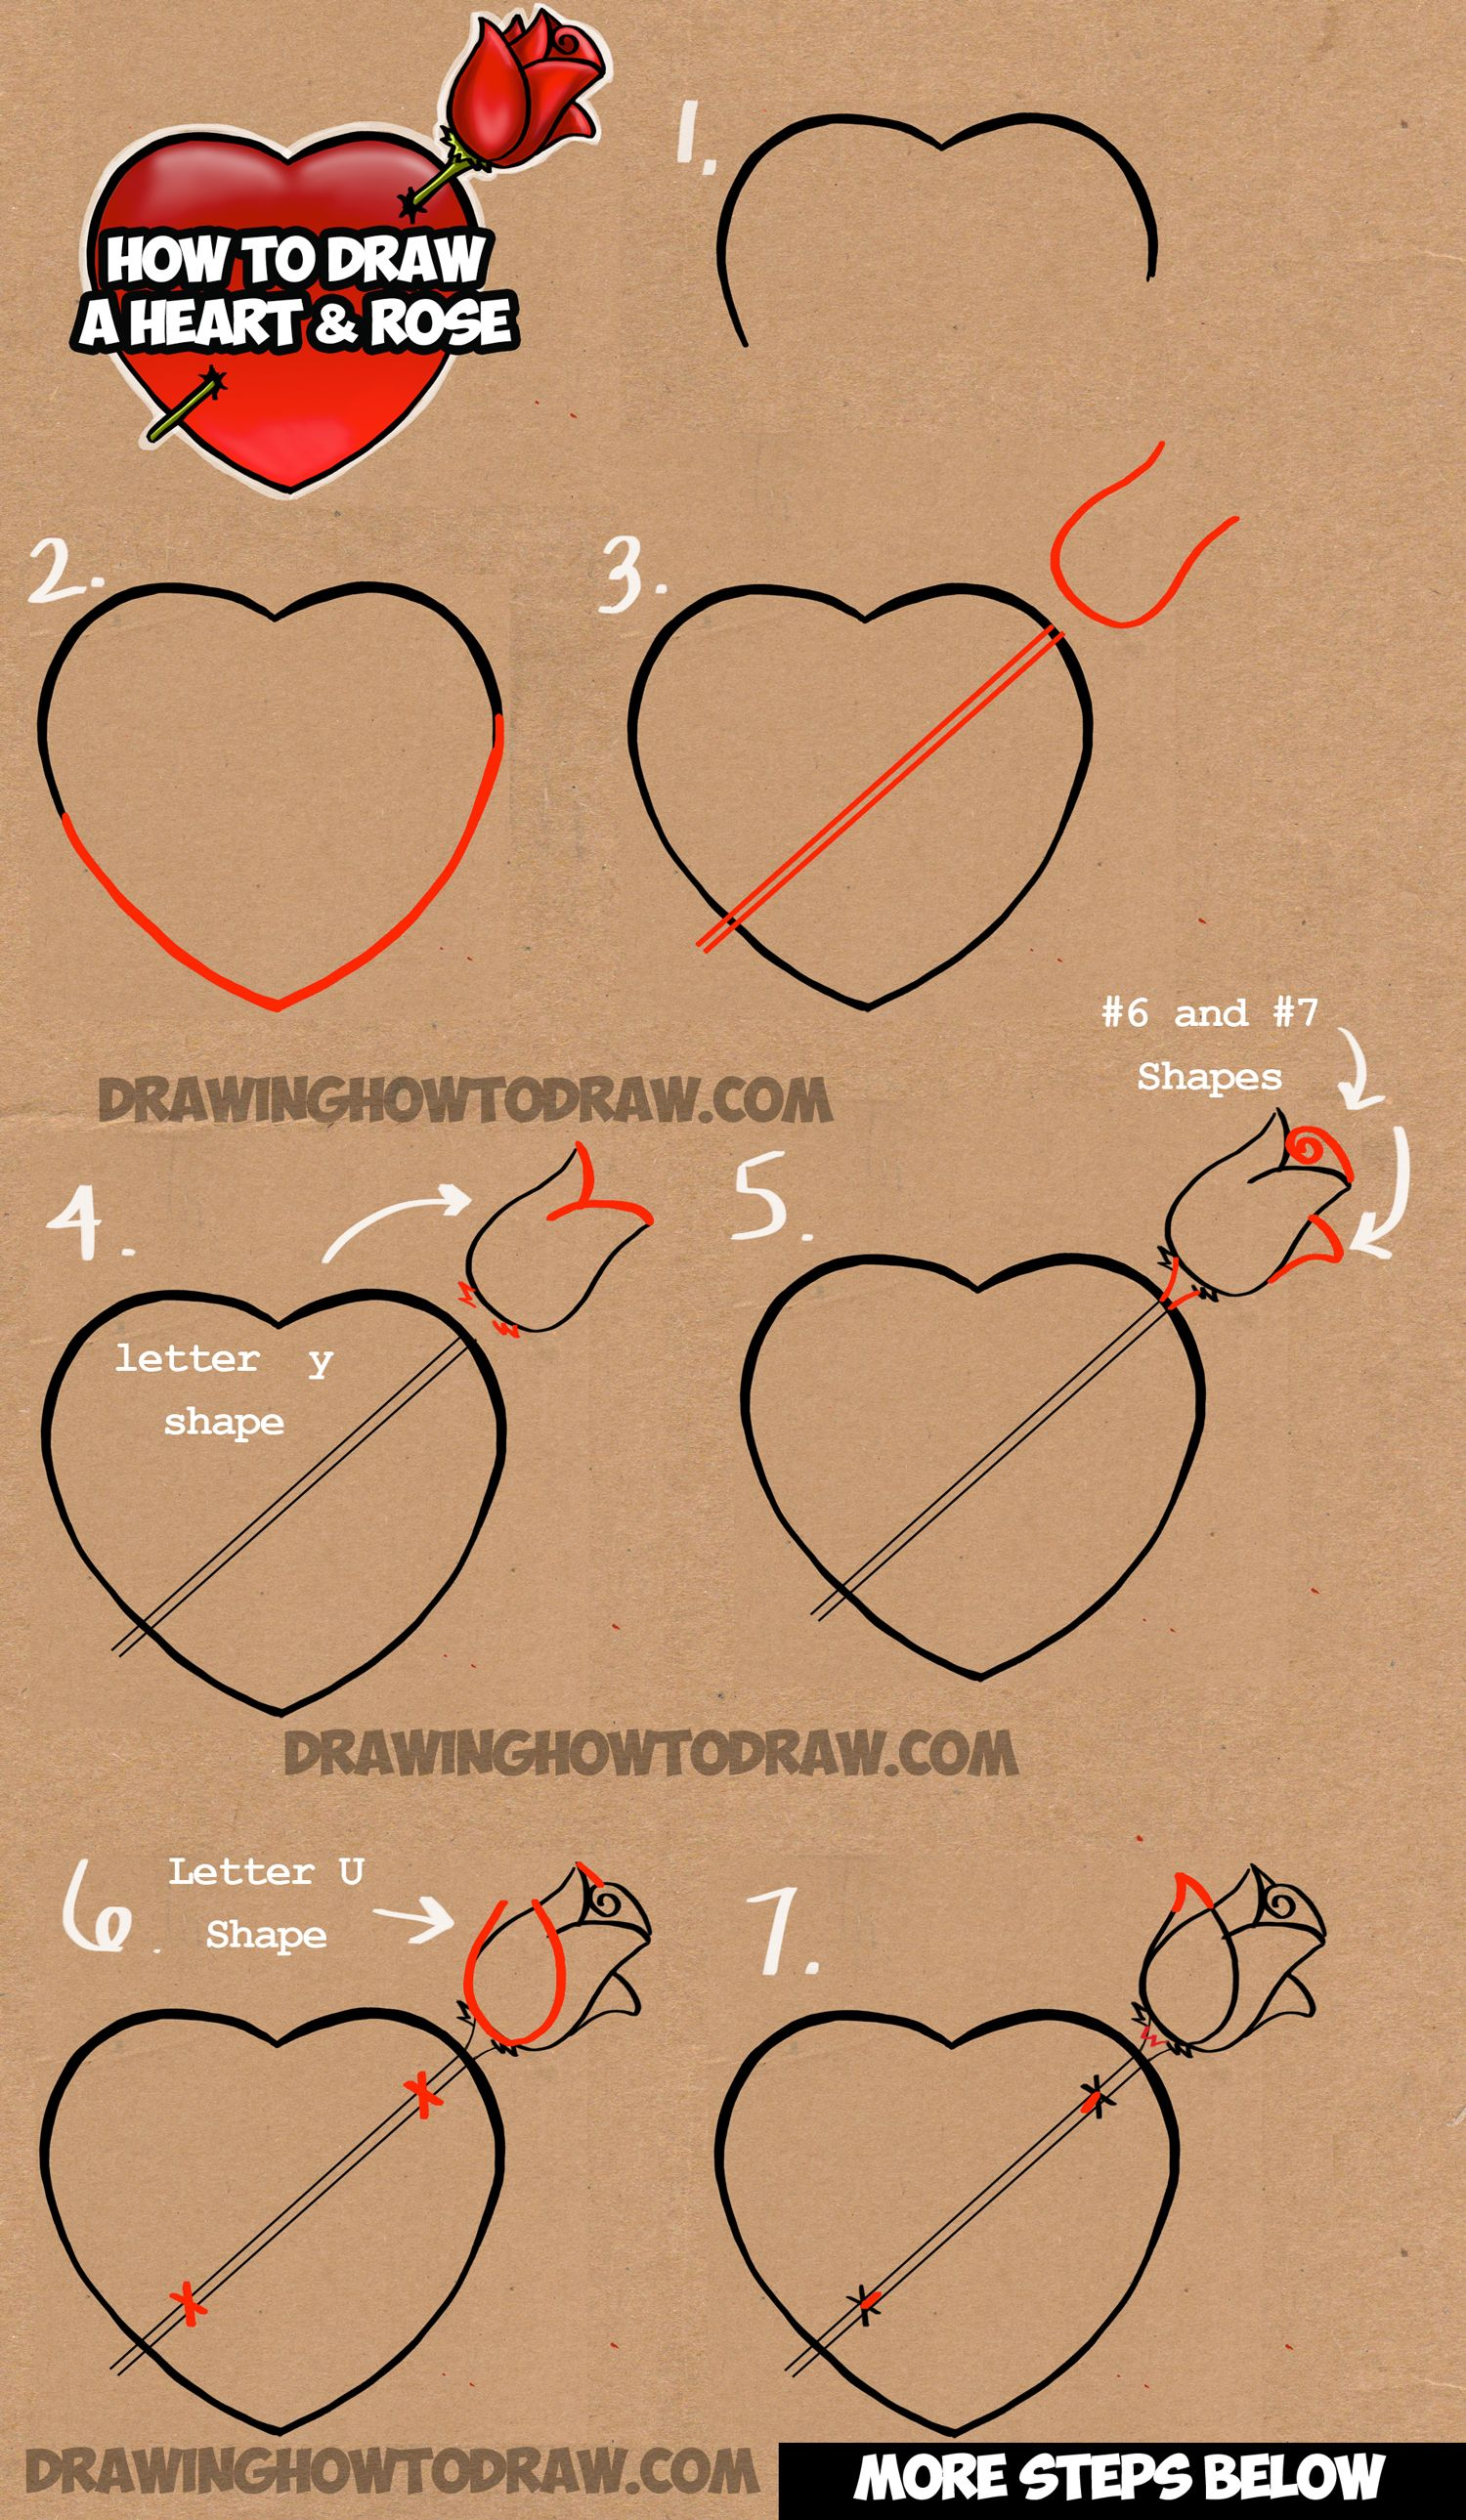 how to draw a heart with a rose piercing it like an arrow